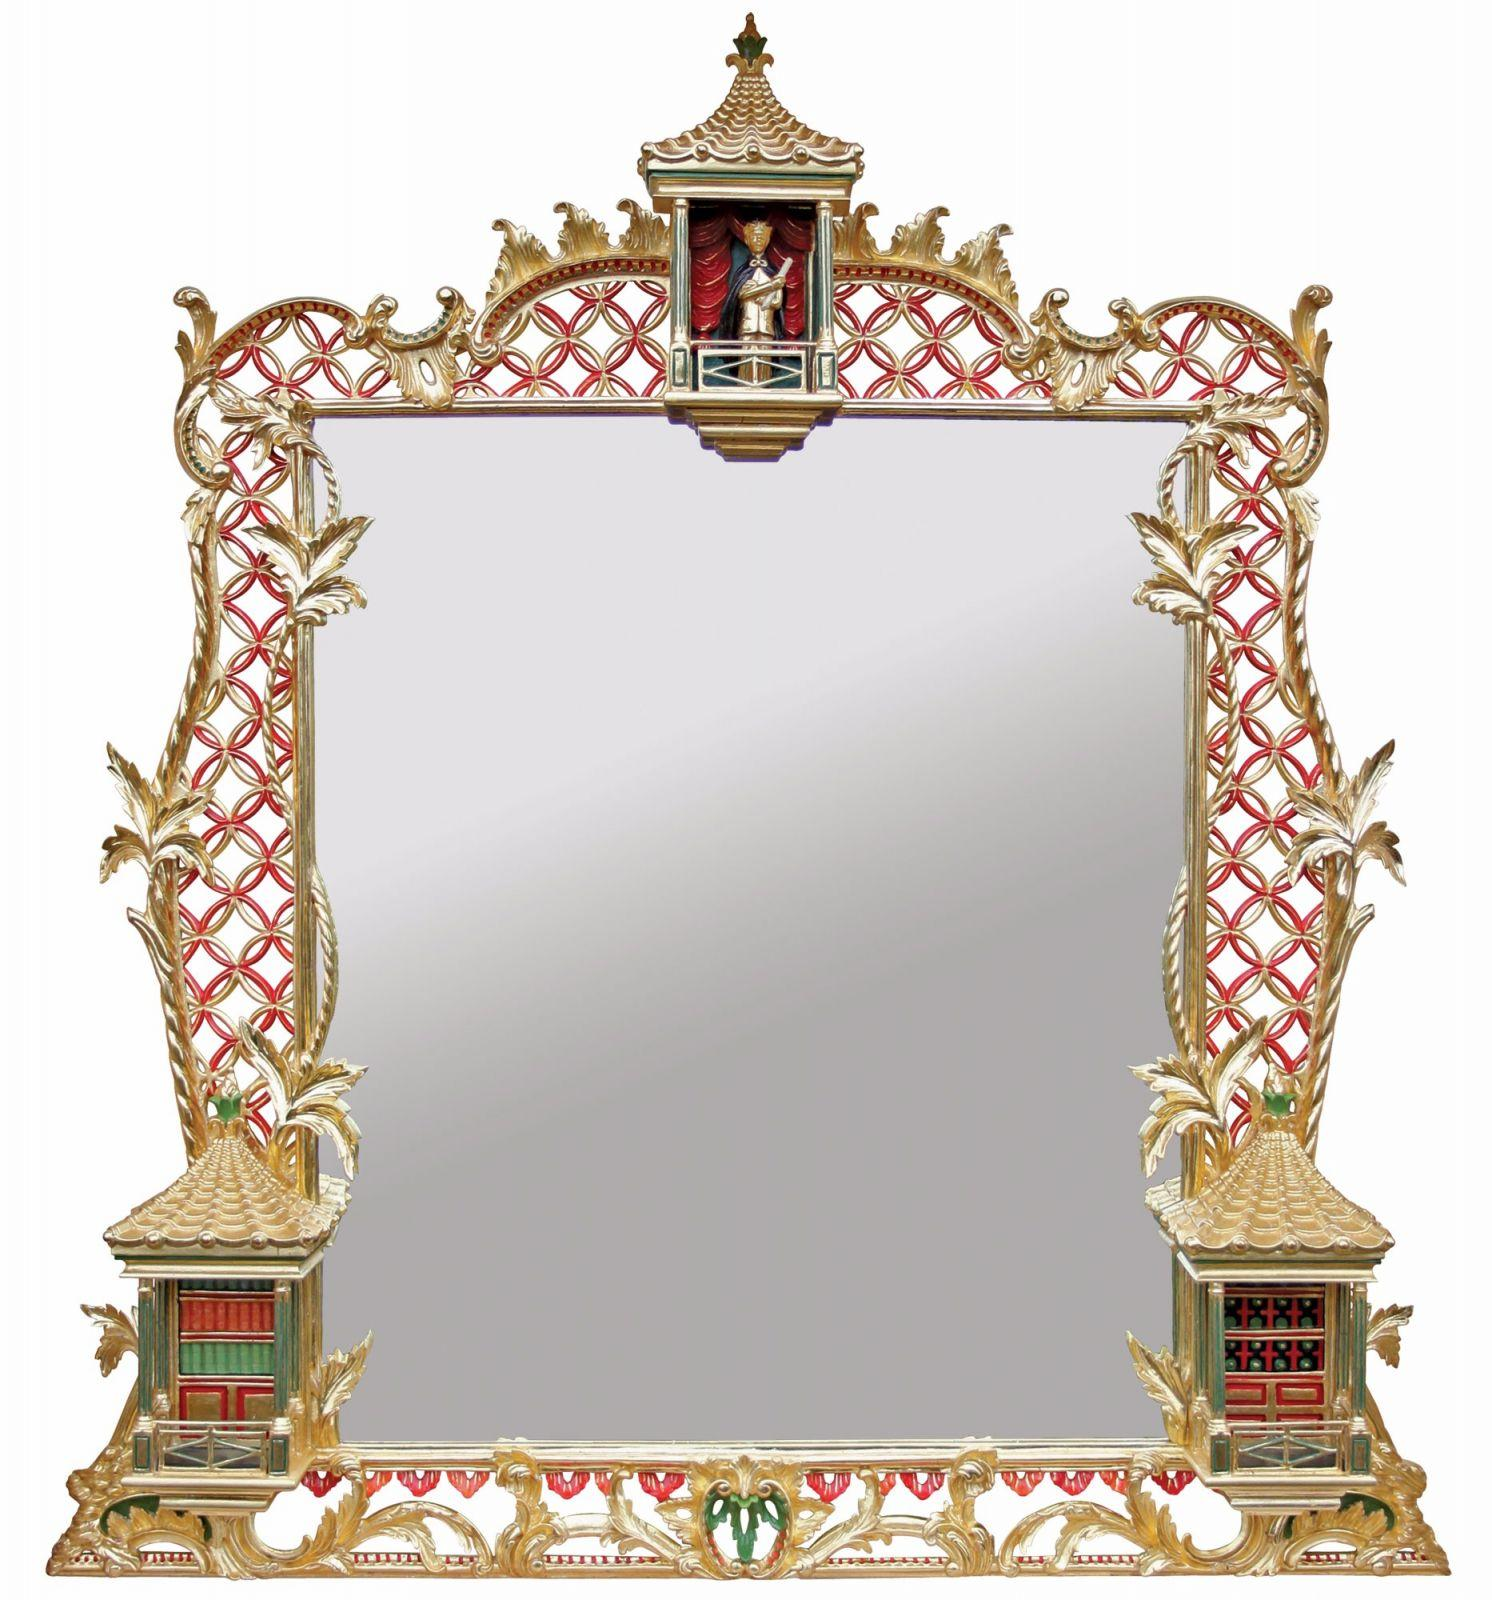 Bespoke water gilded and etched overmantel mirror